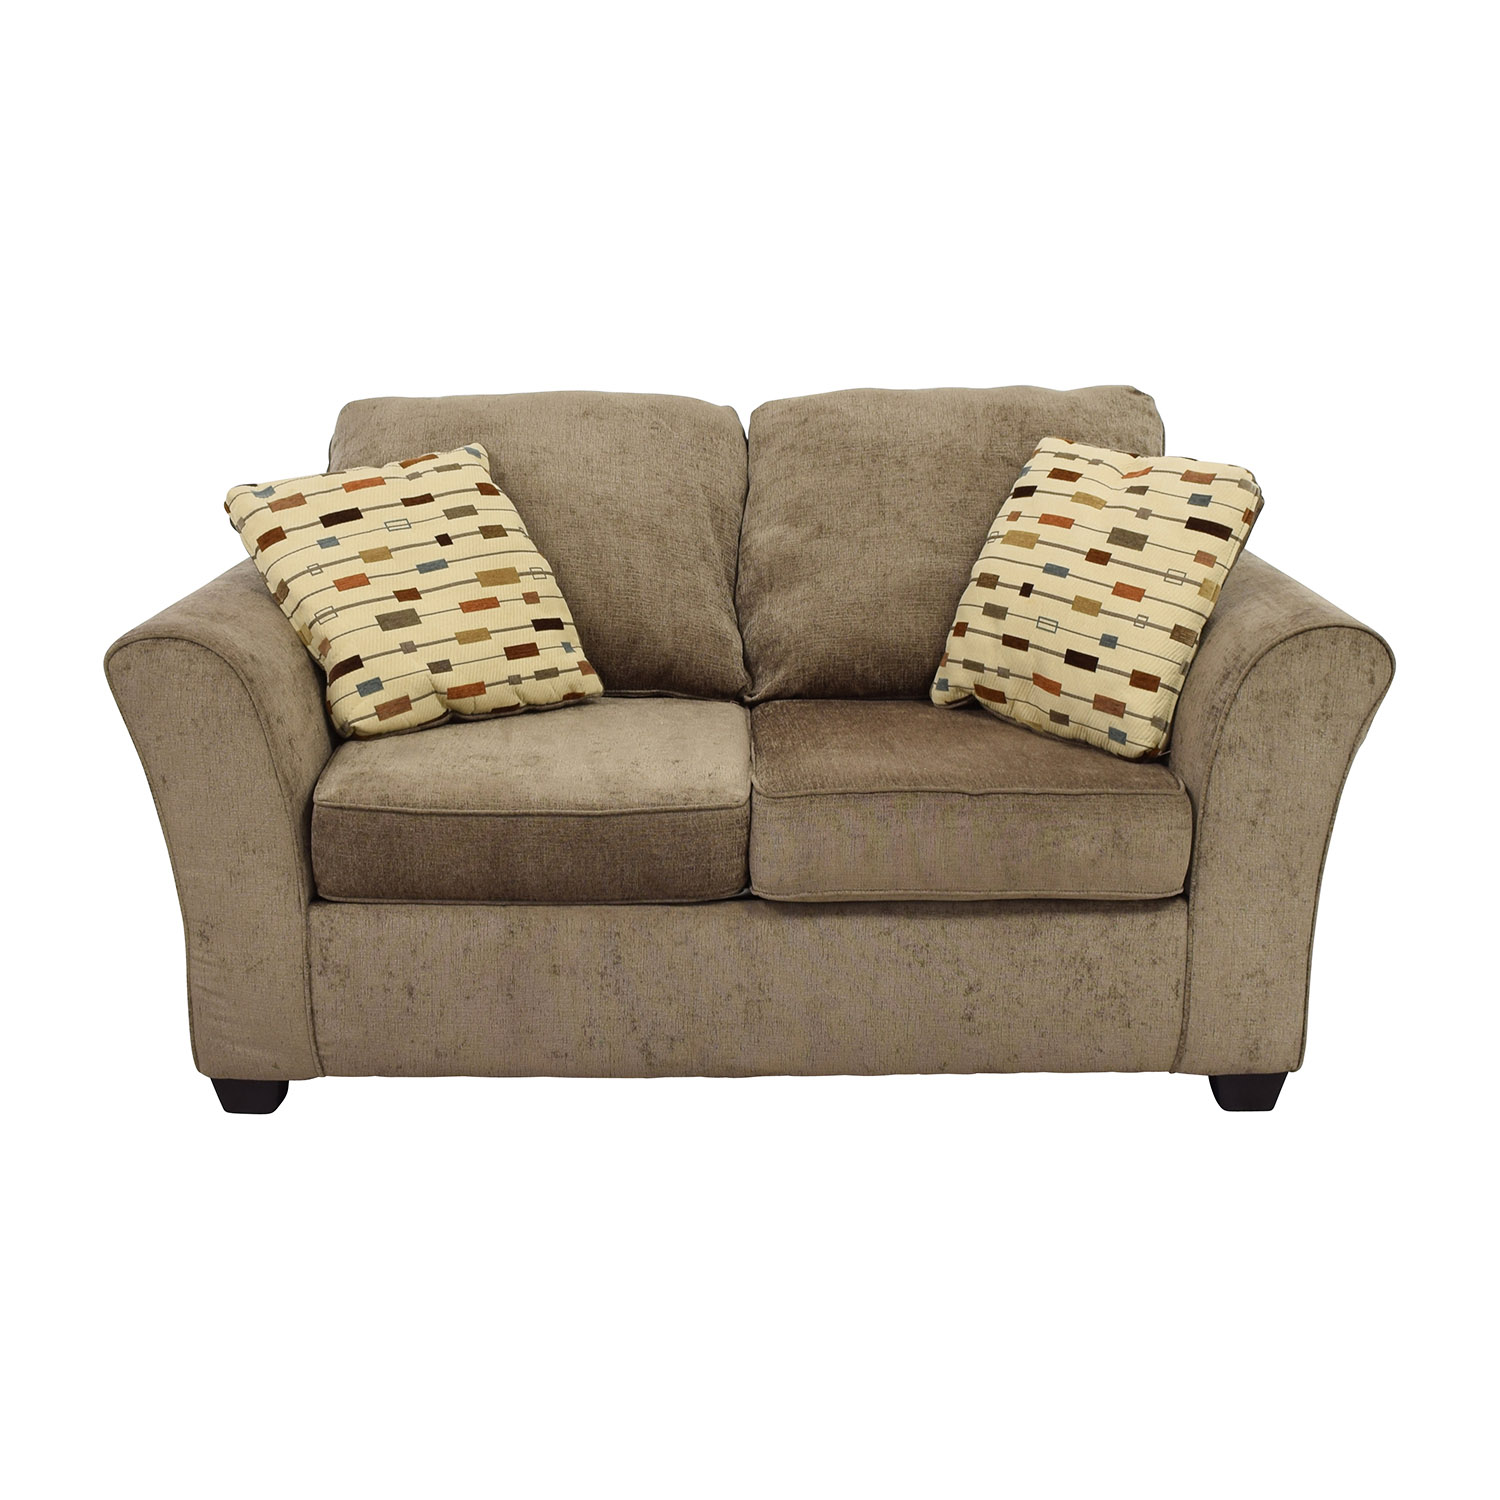 Klaussner Salina Klaussner Salina Brown Two Seater Loveseat with Pillows nyc